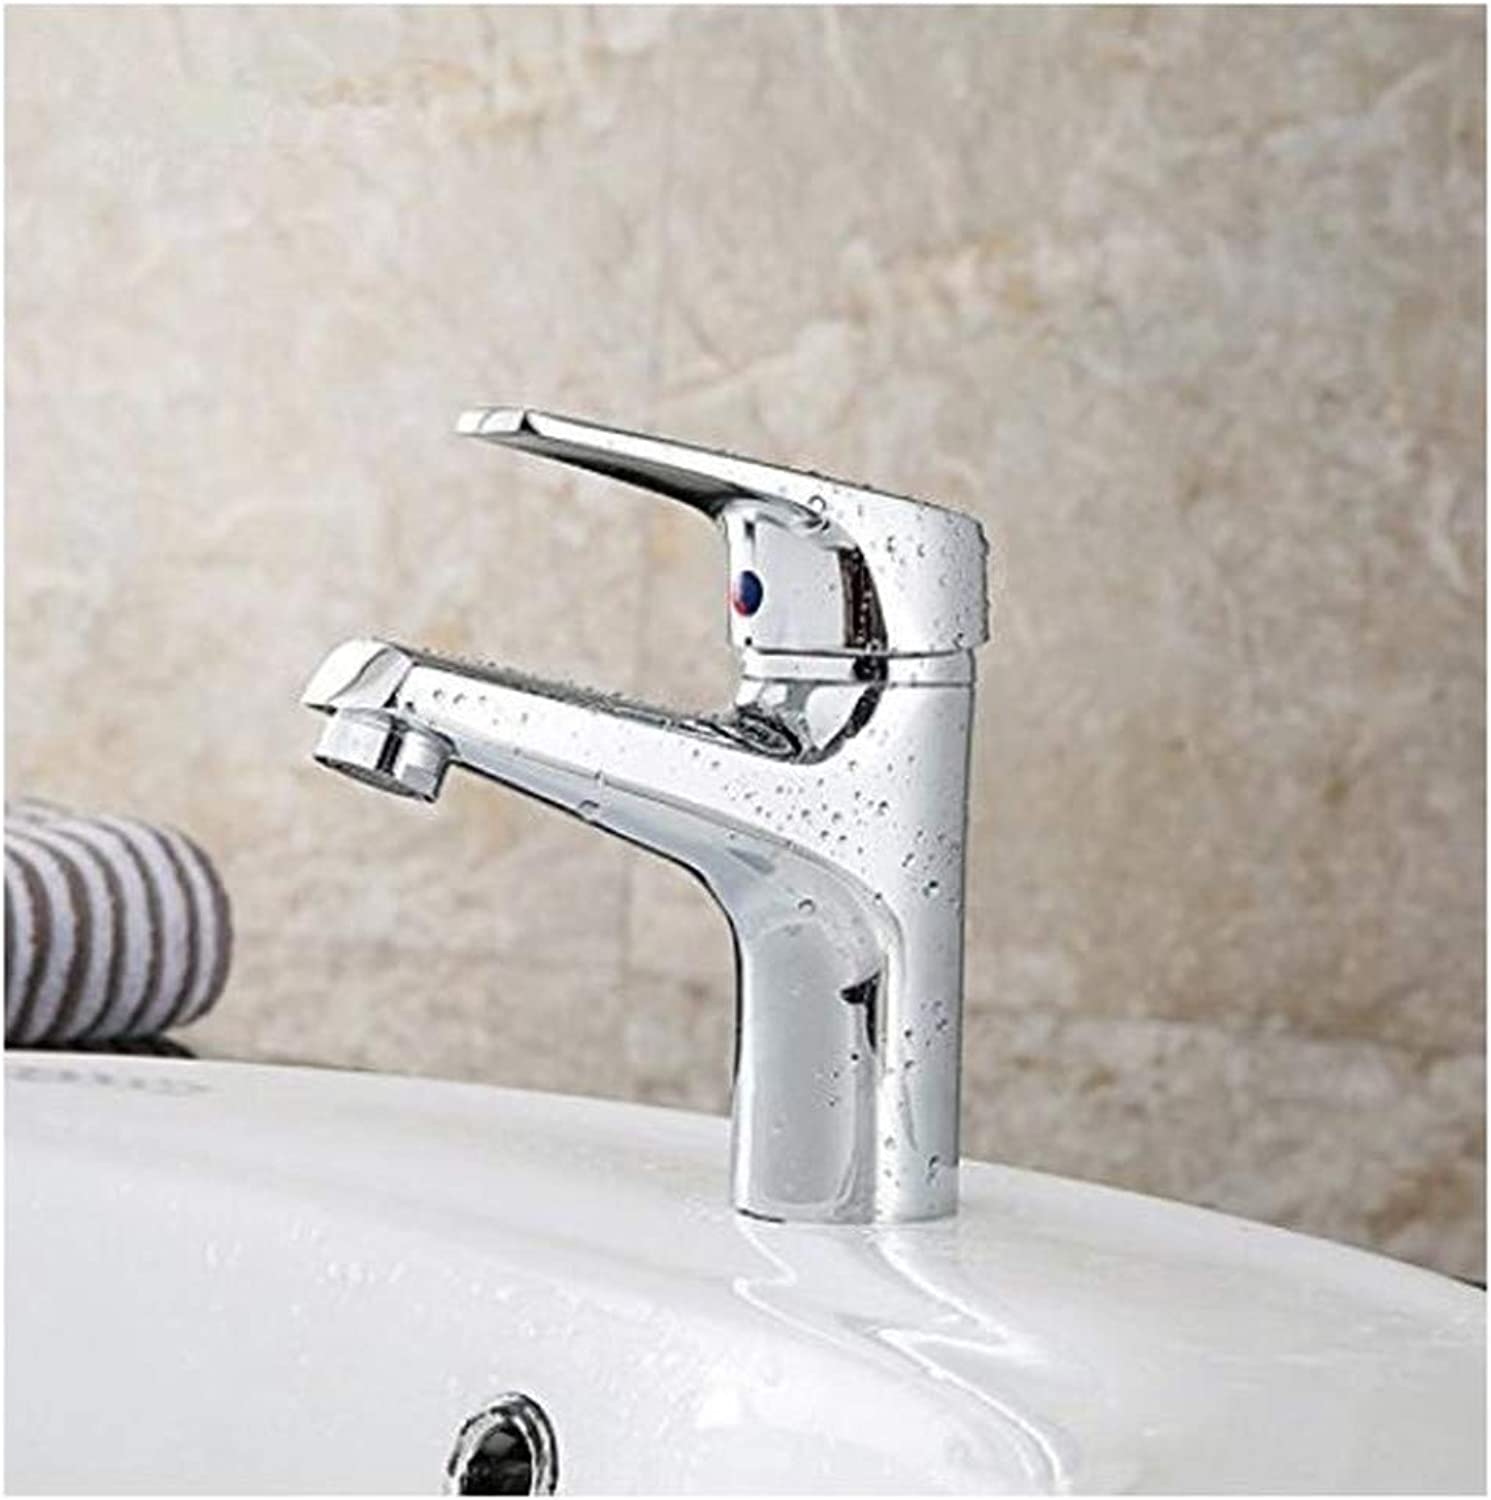 Faucet Luxury Modern Mixer Faucet Full Copper Faucet Hot and Cold Single Hole Basin Faucet